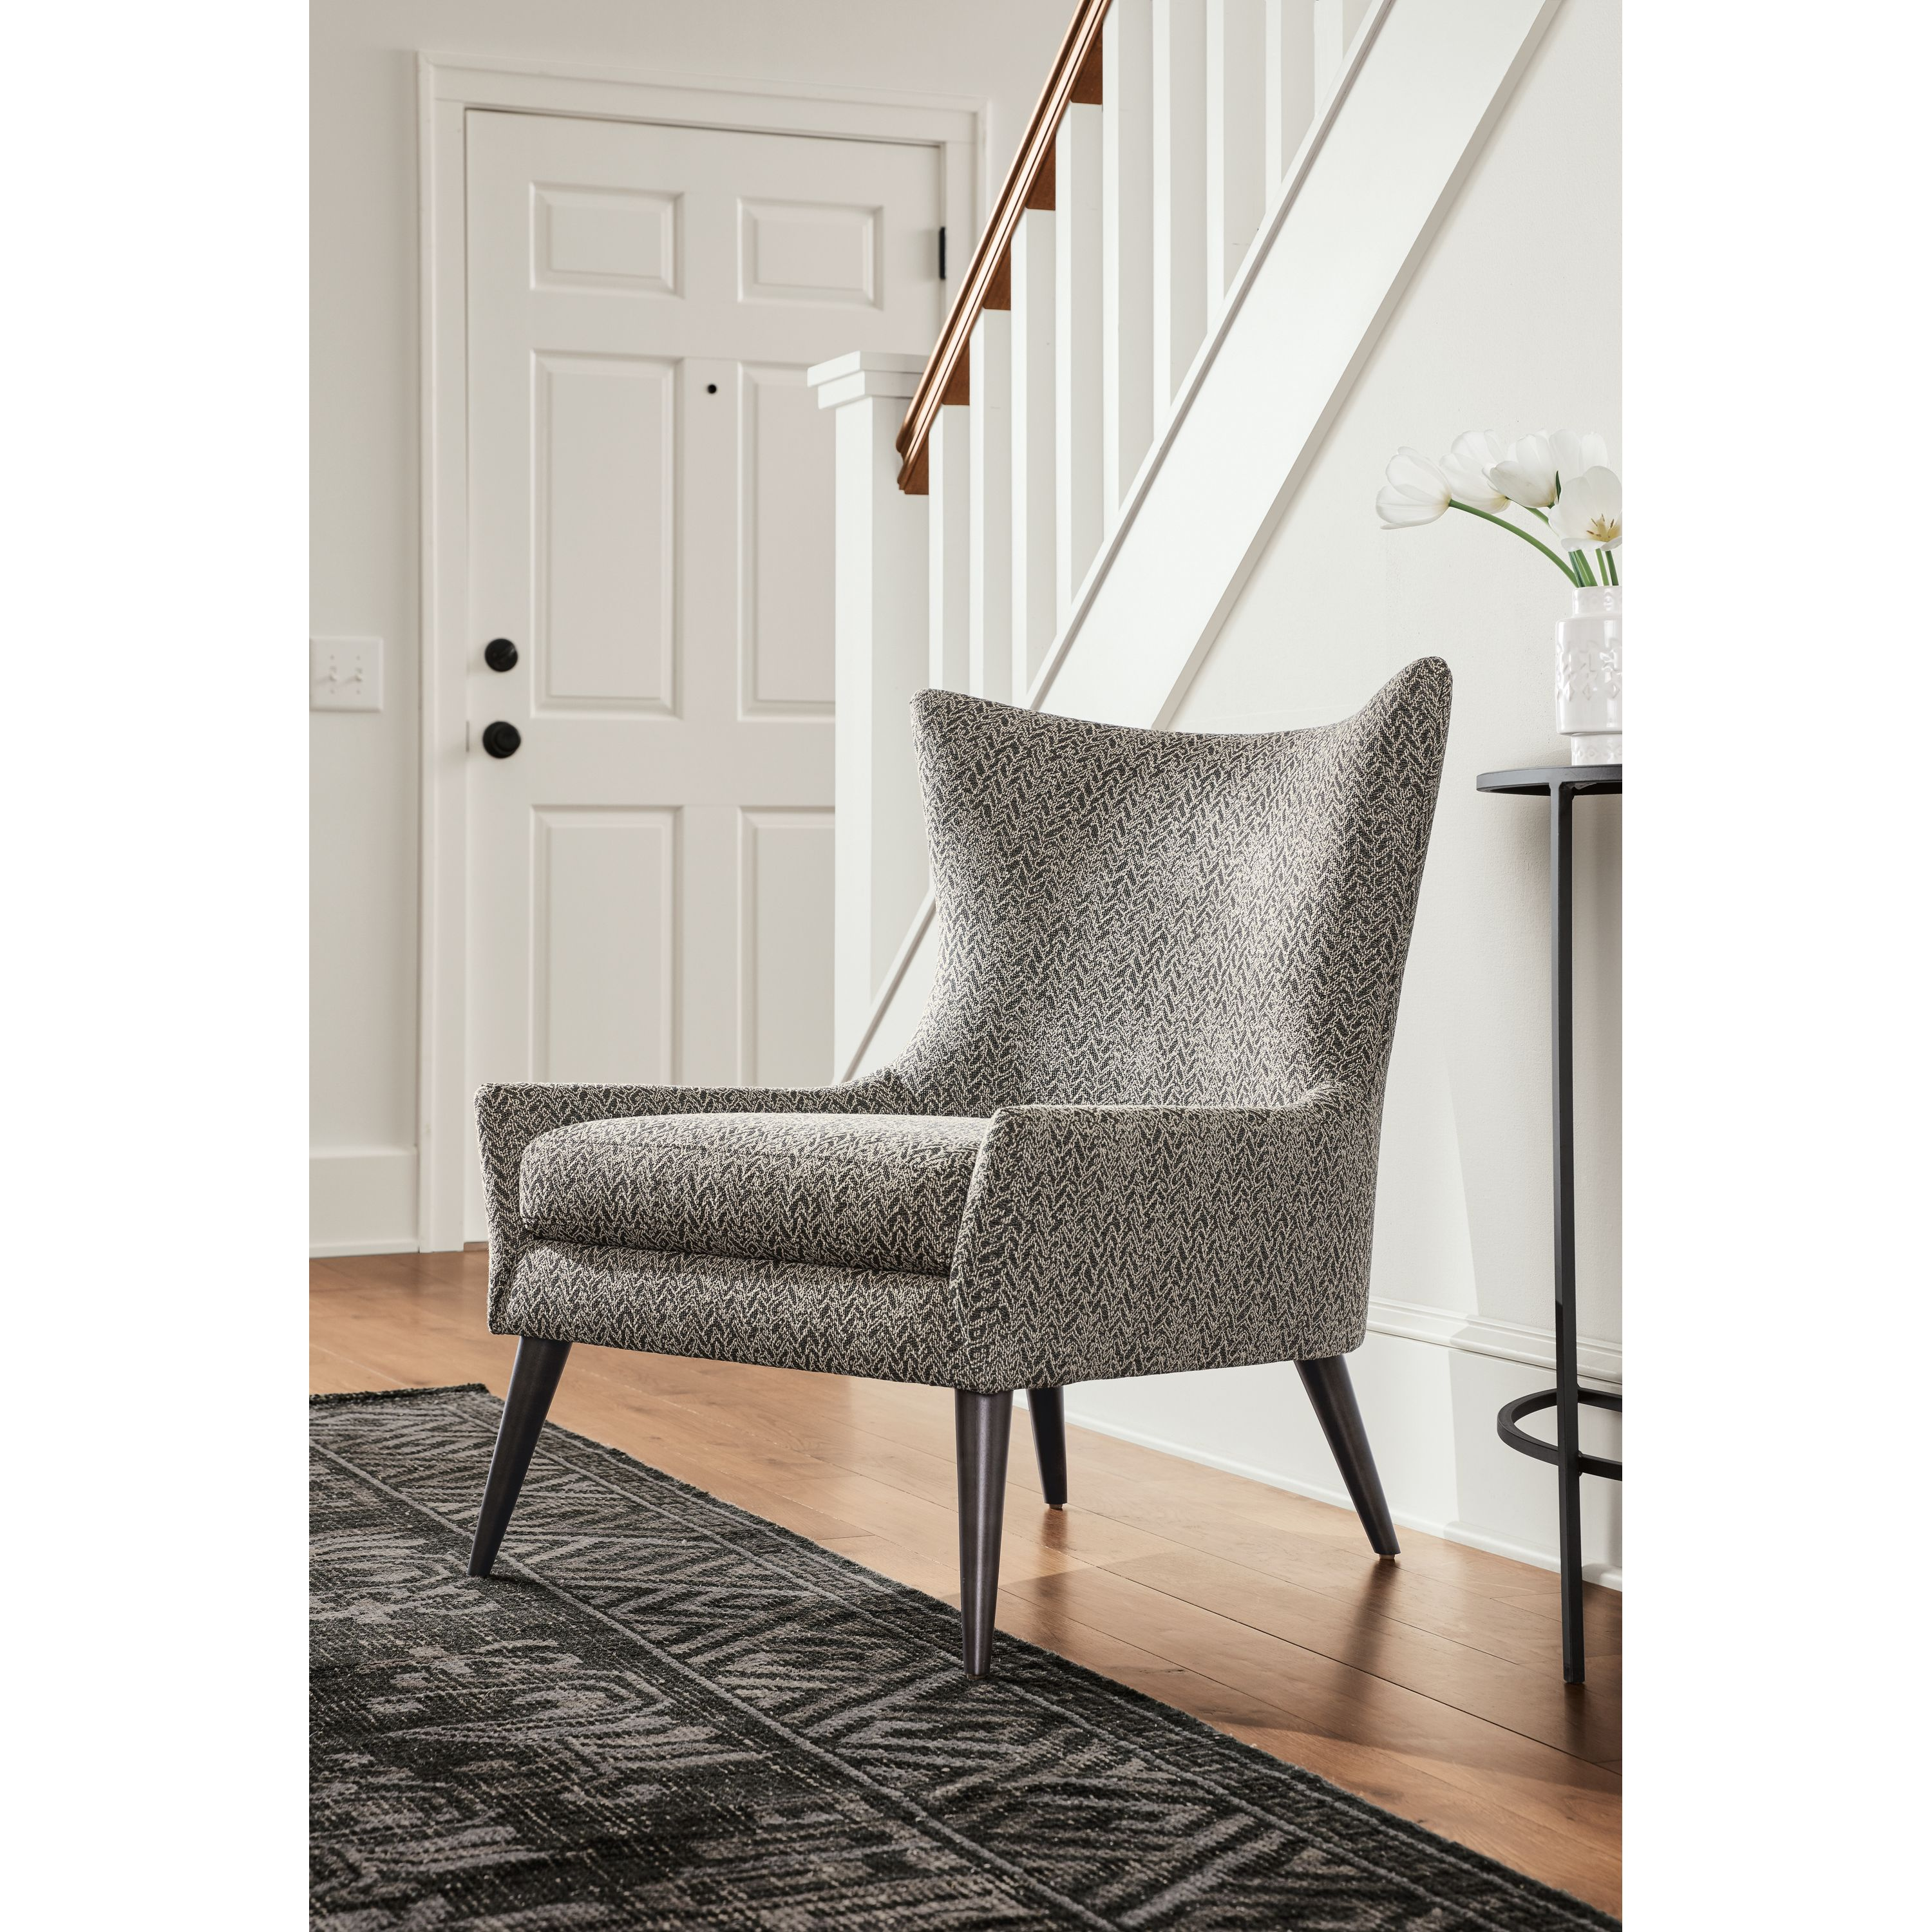 room board lola chair products living room chairs modern rh pinterest com